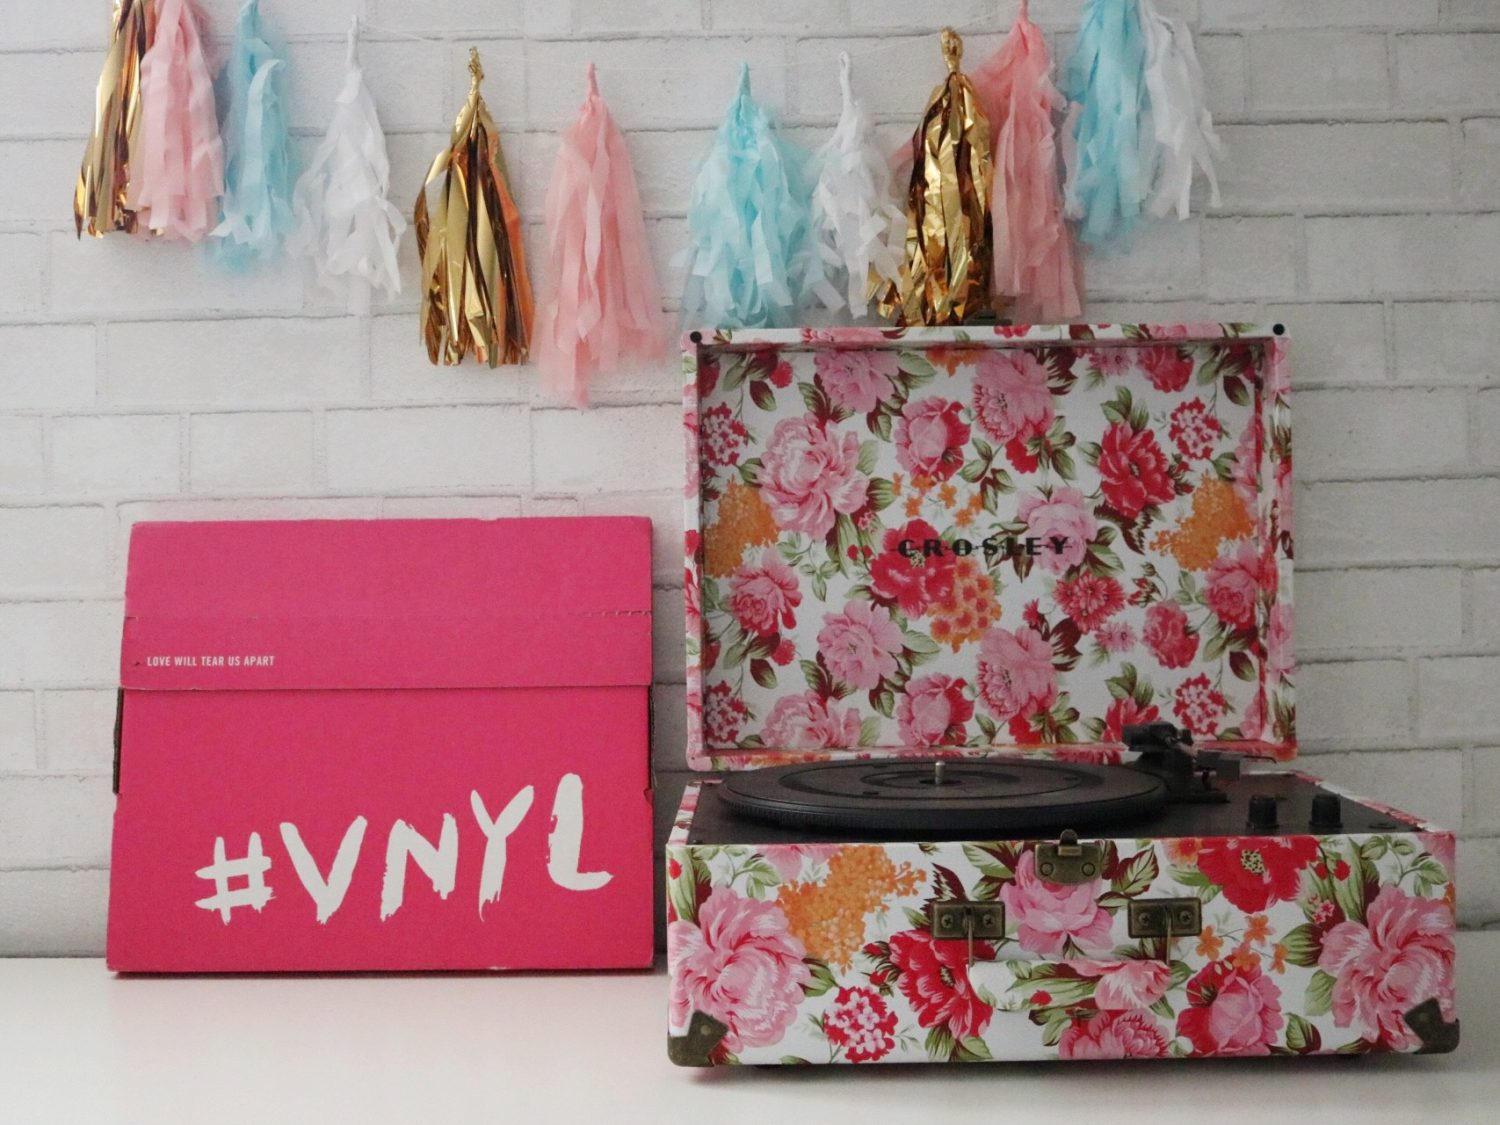 VNYL Curated Vinyl Records Delivered Monthly